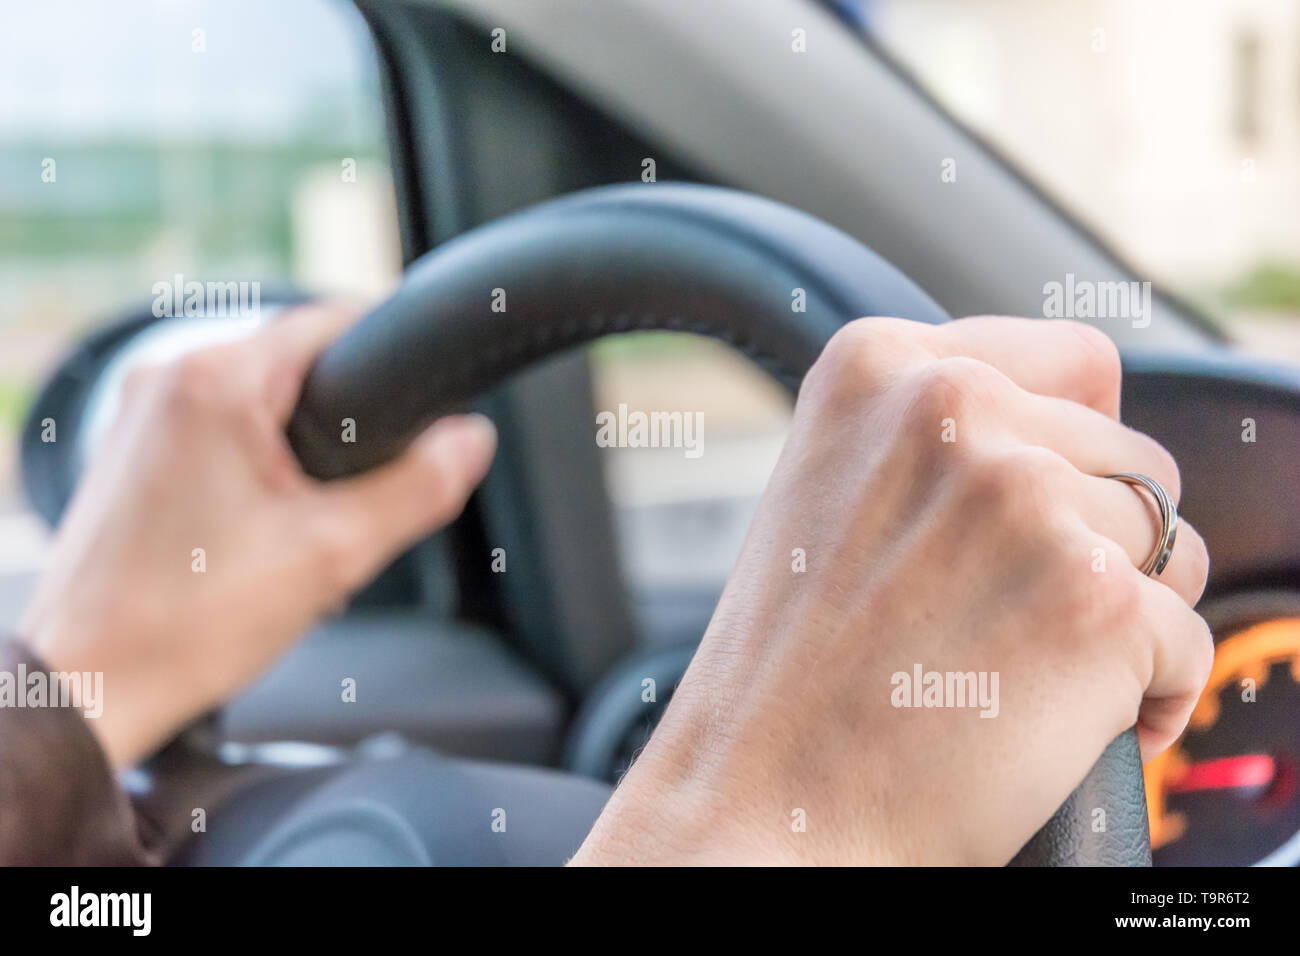 Woman holds the steering wheel tight while driving - Stock Image